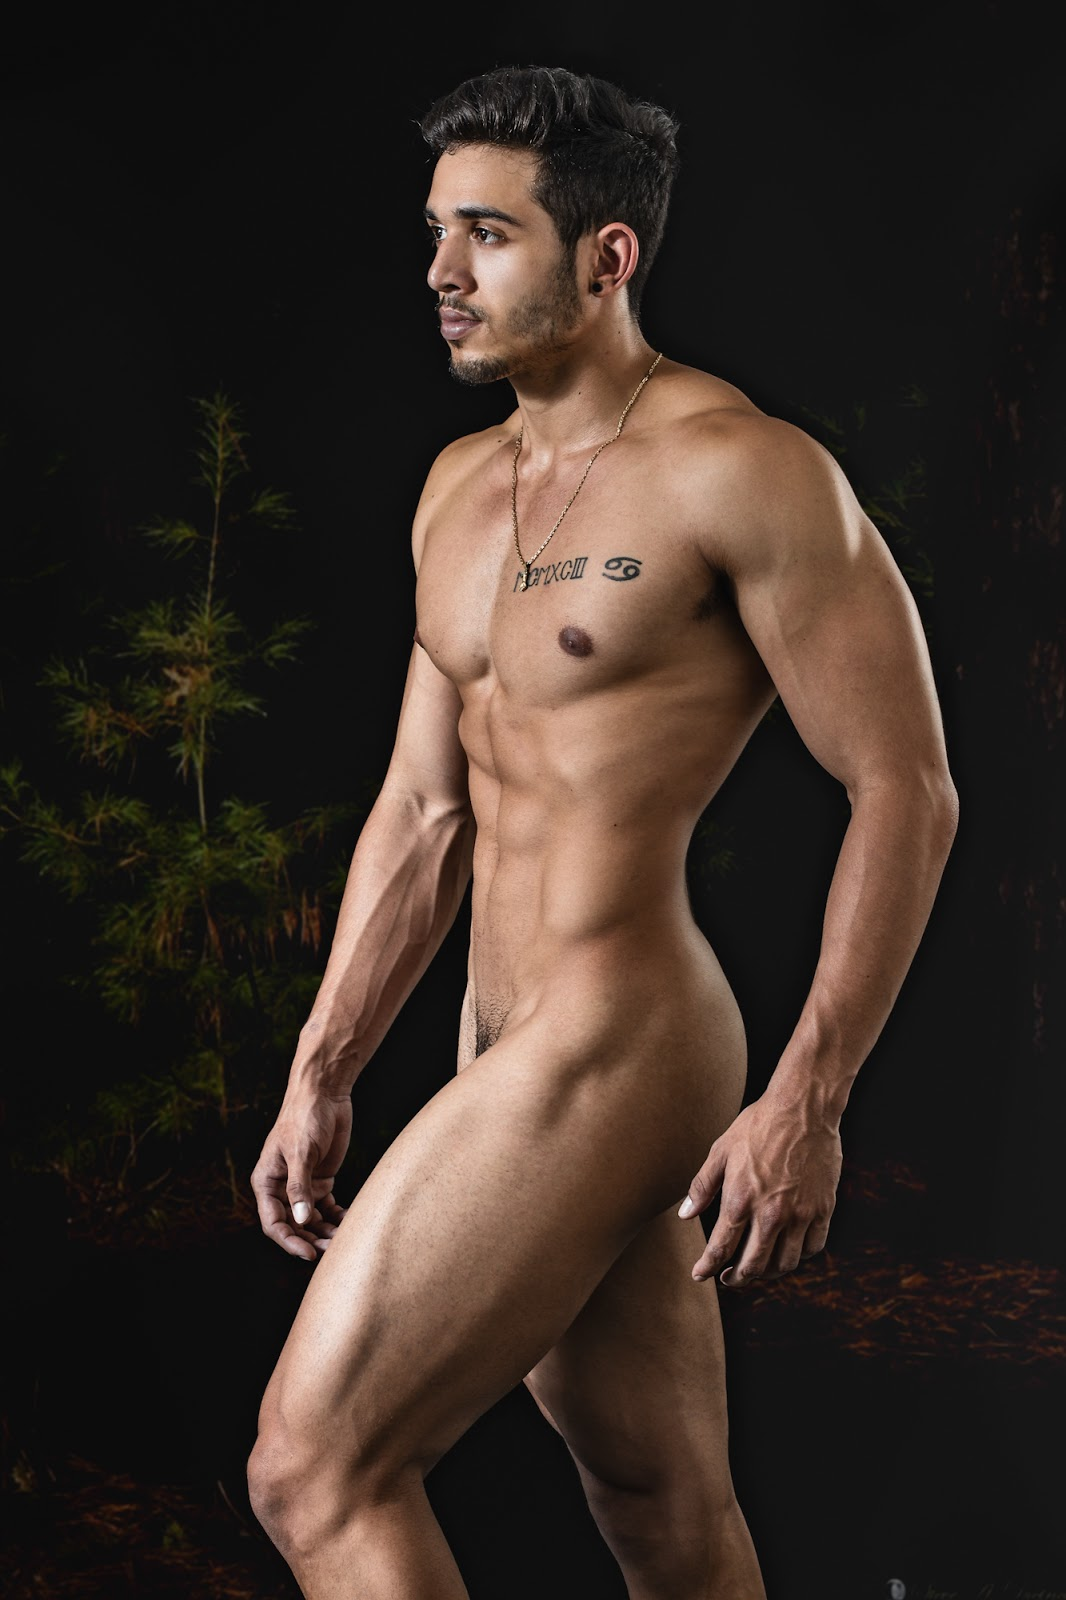 south-american-male-nude-models